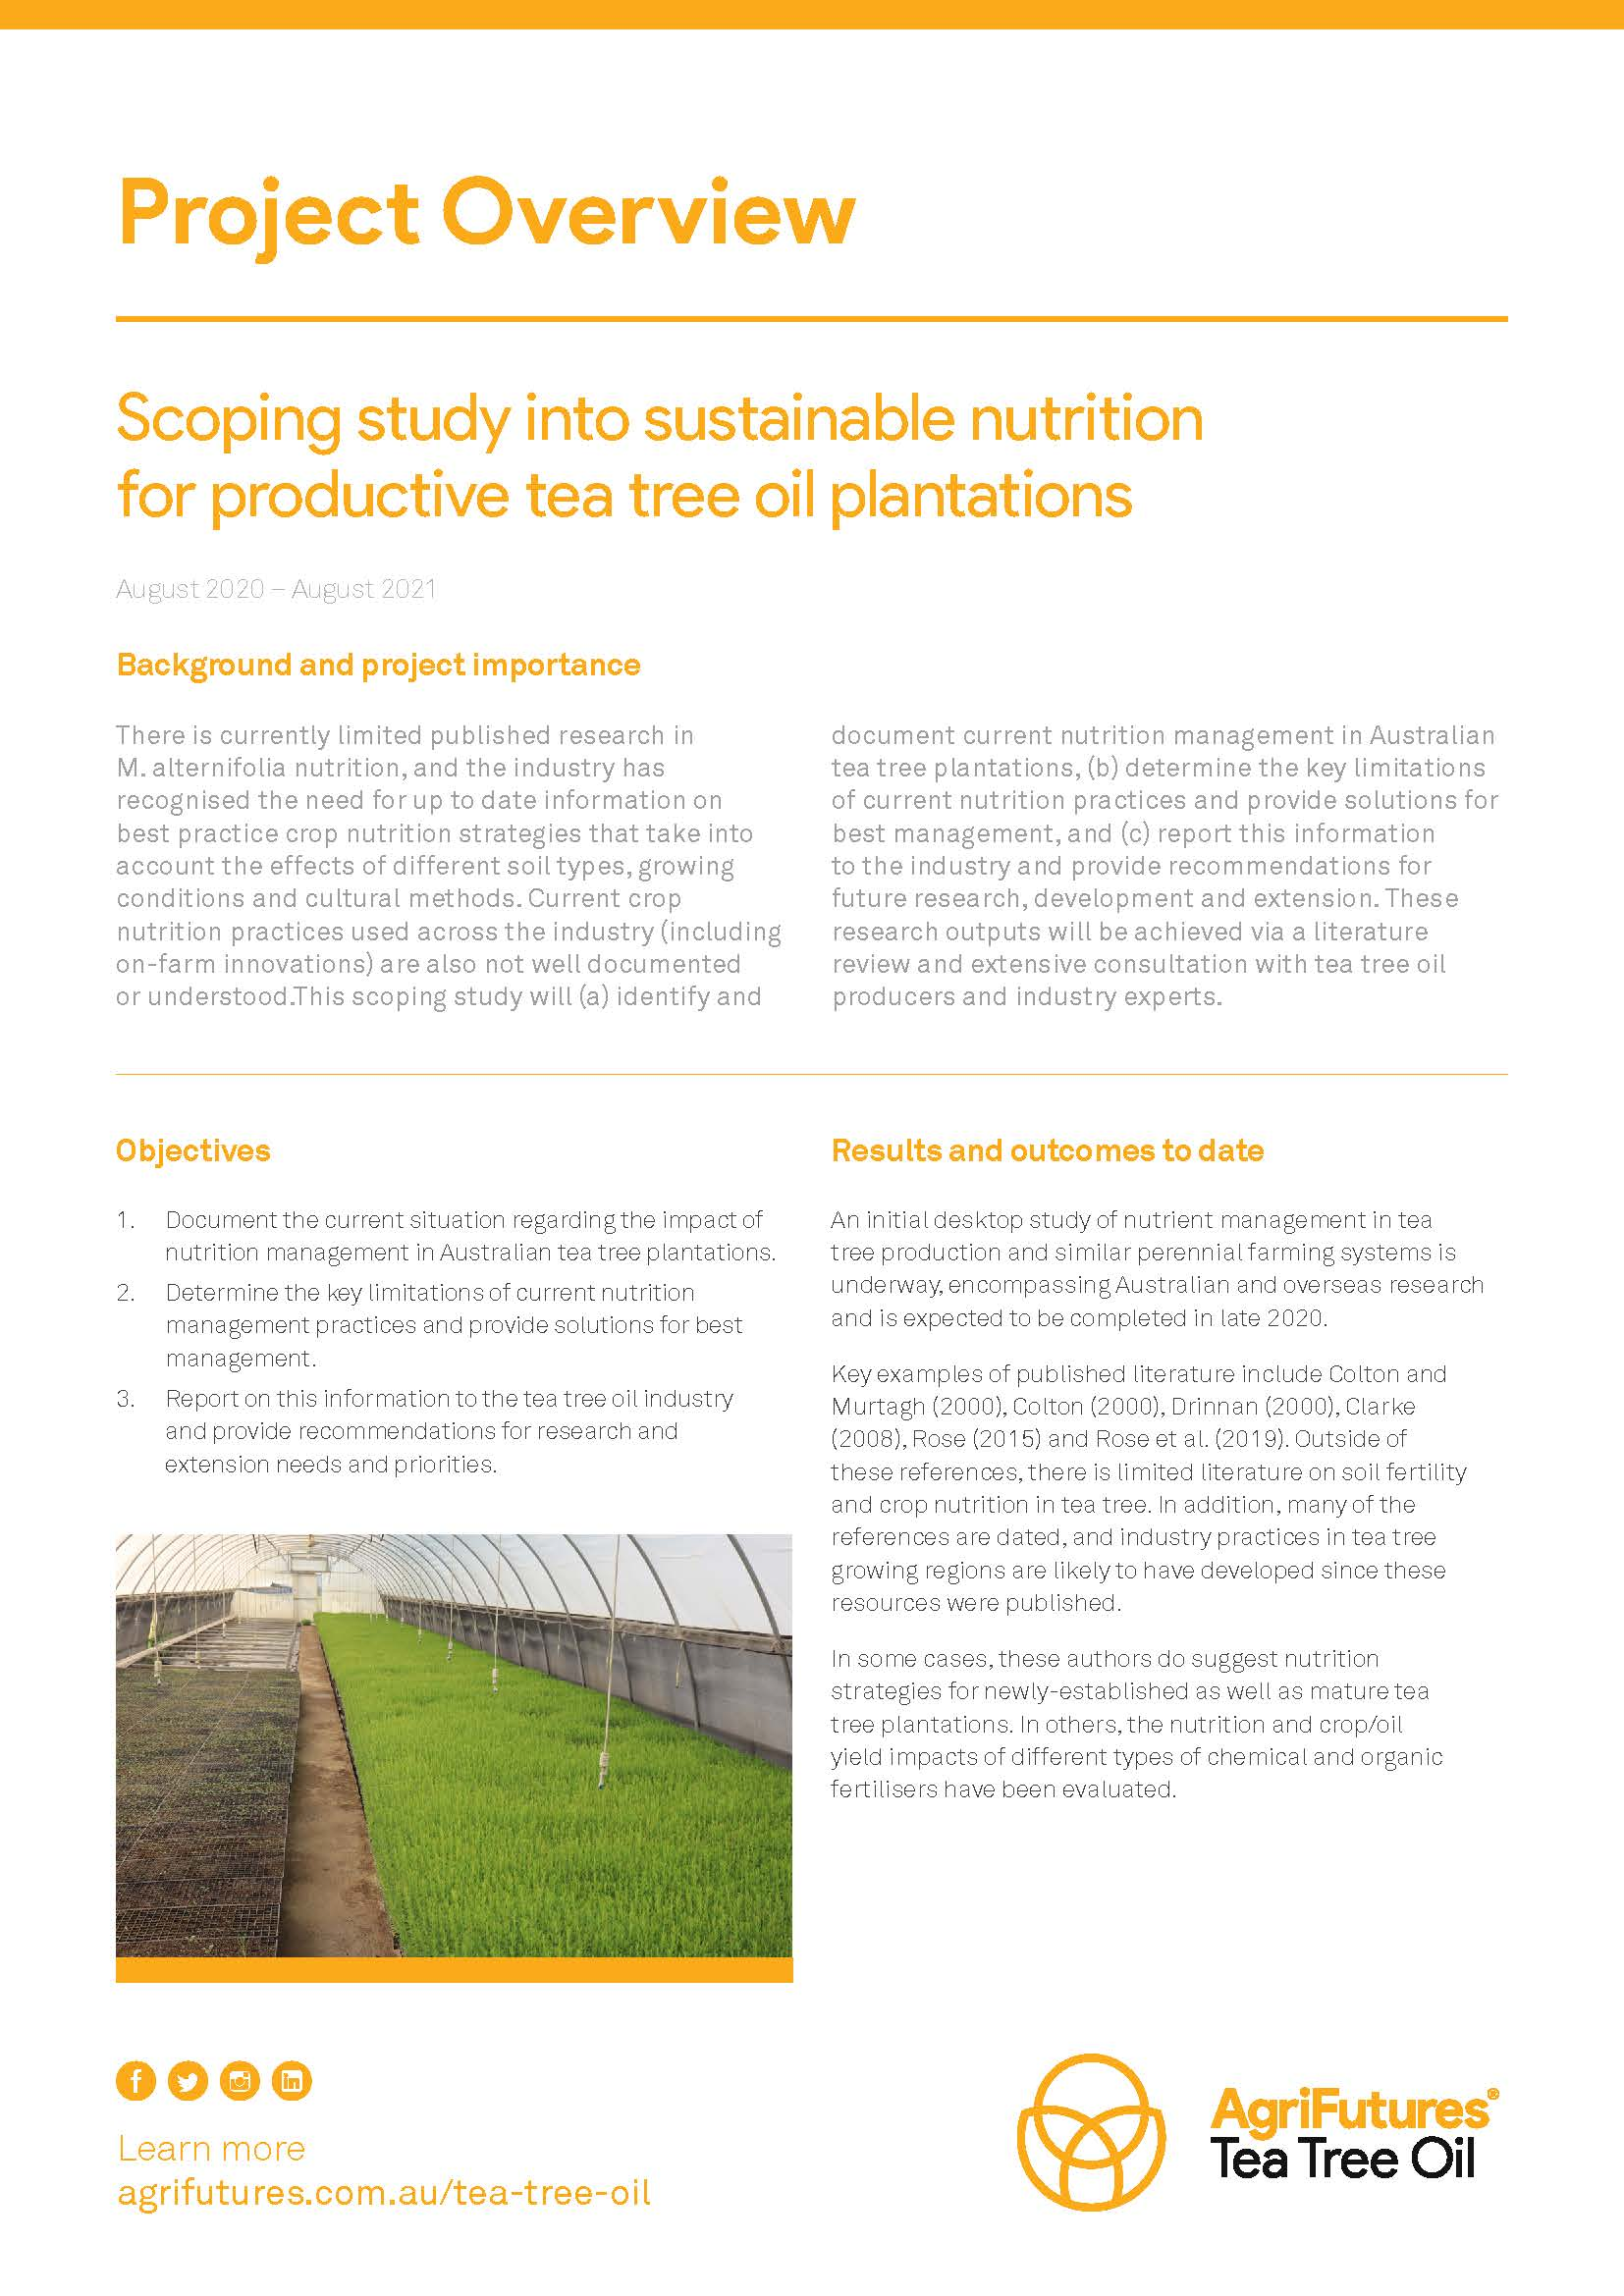 Project Overview: Scoping study into sustainable nutrition for productive tea tree oil plantations - image